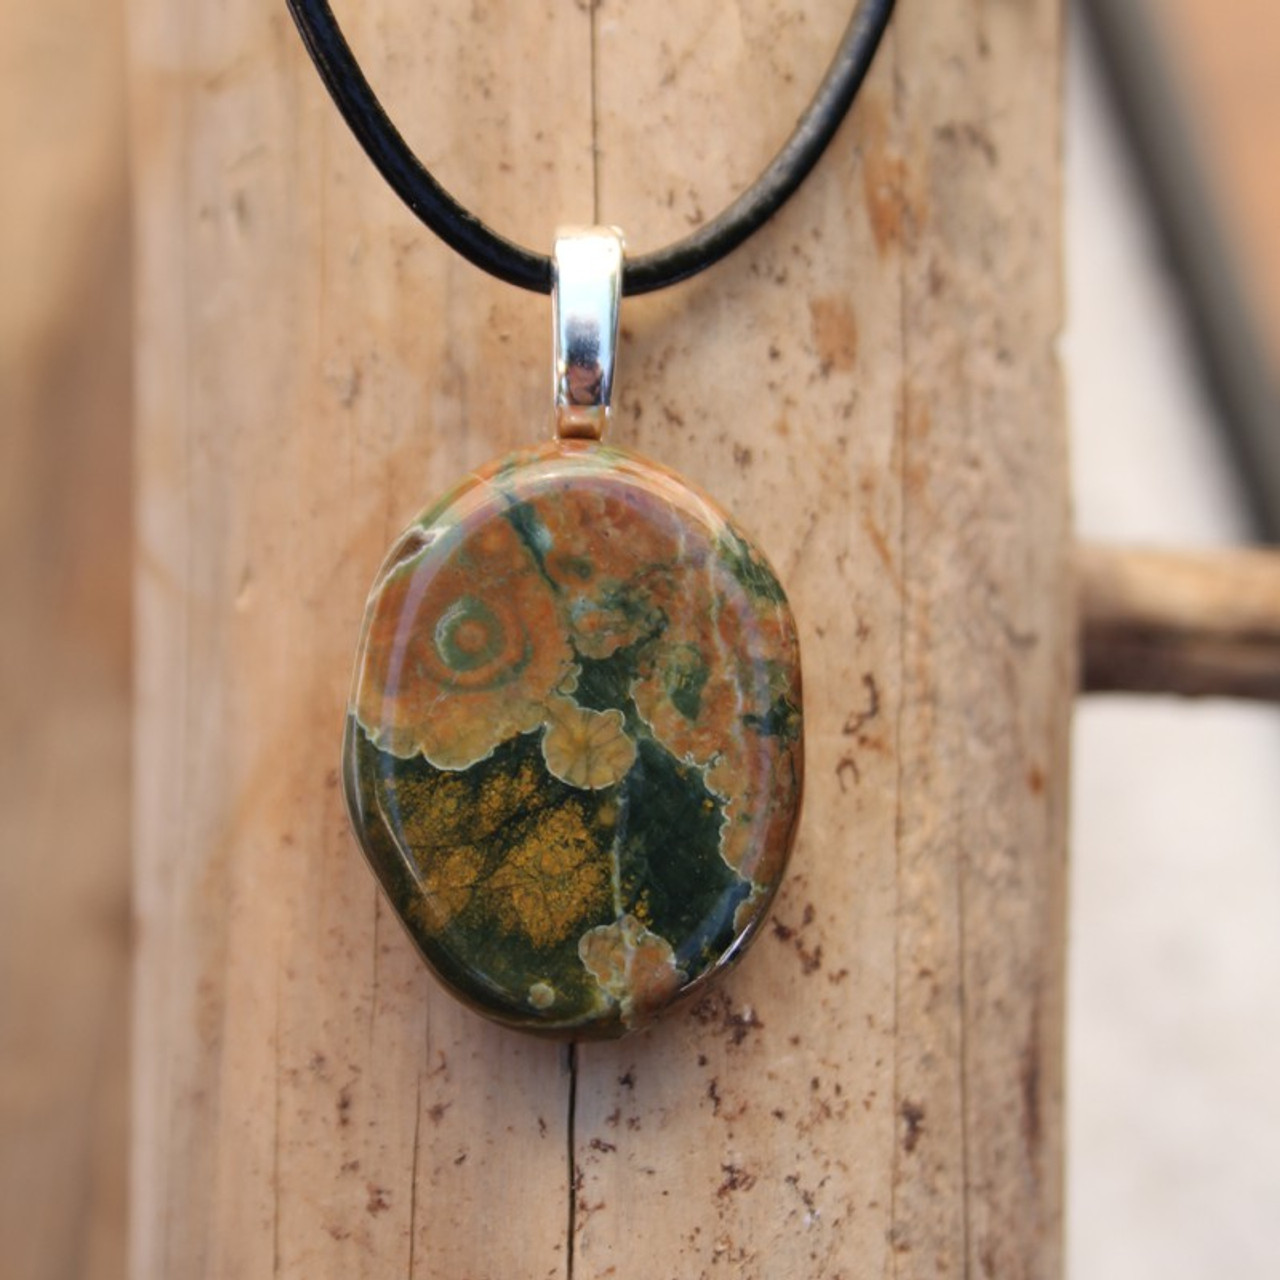 Rhyolite Palm Stone on a Leather Thong Necklace - Made to Order